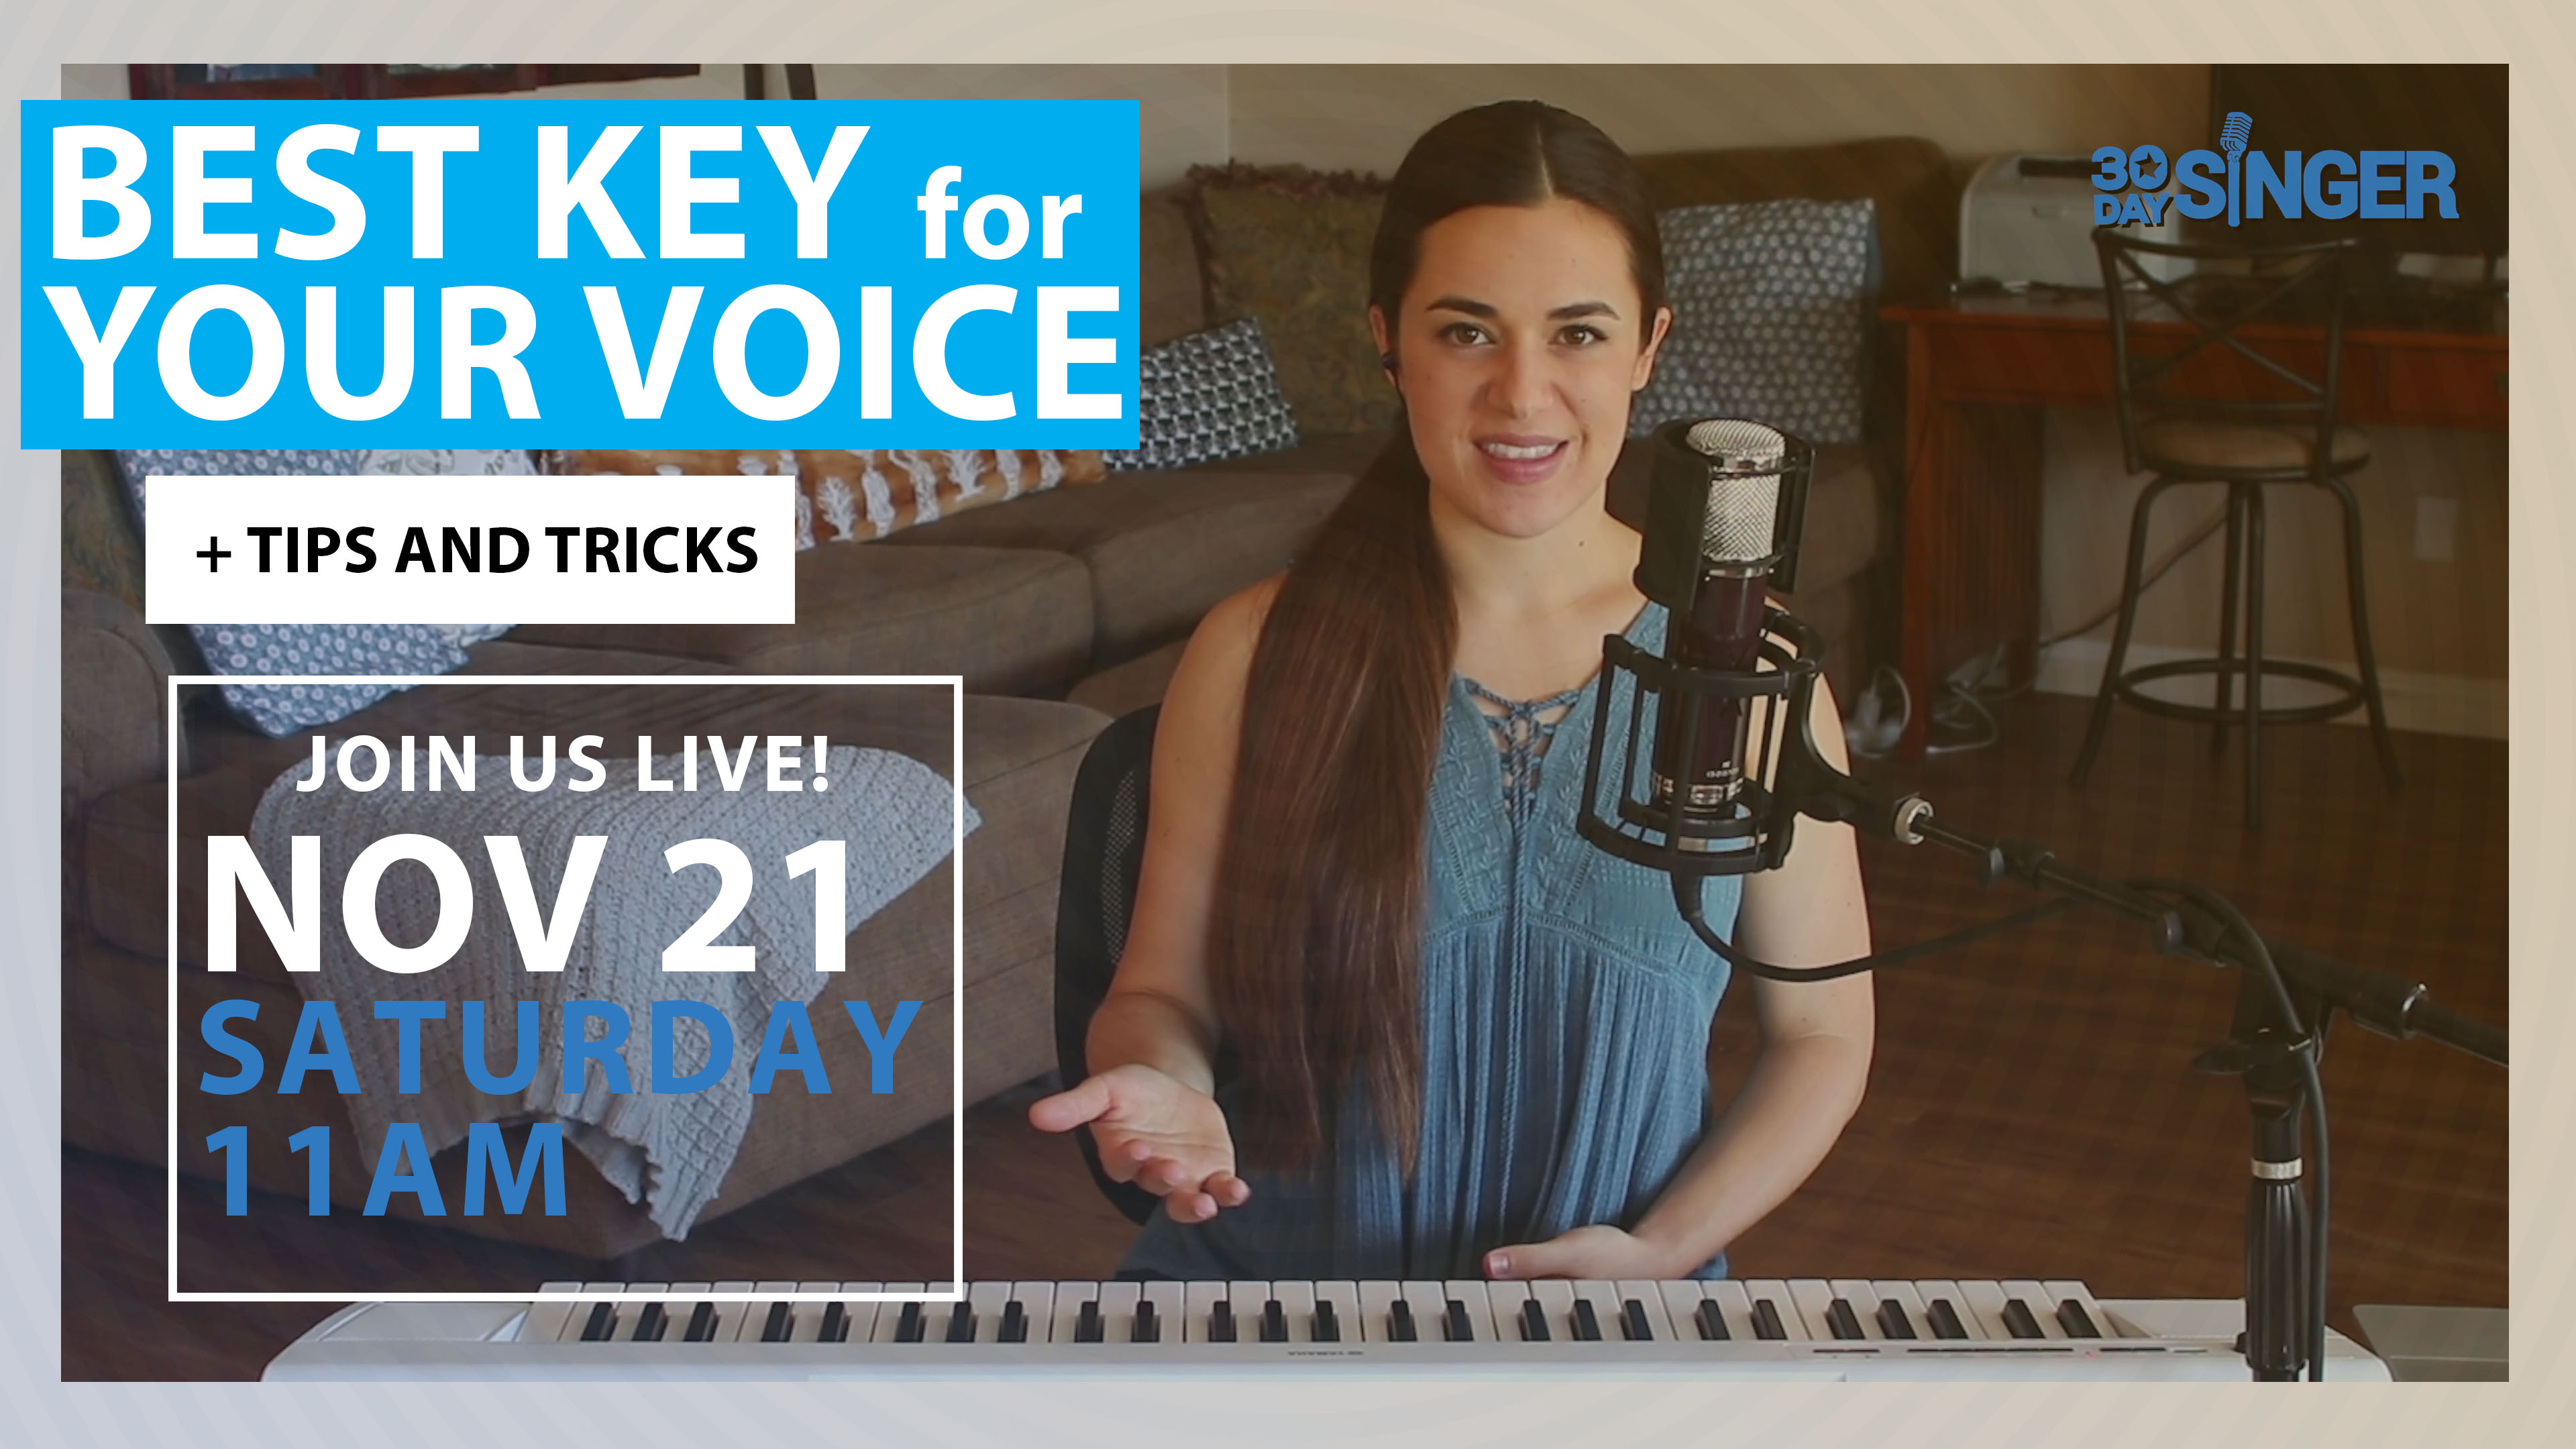 HOW TO: Find the Best Key for Your Voice